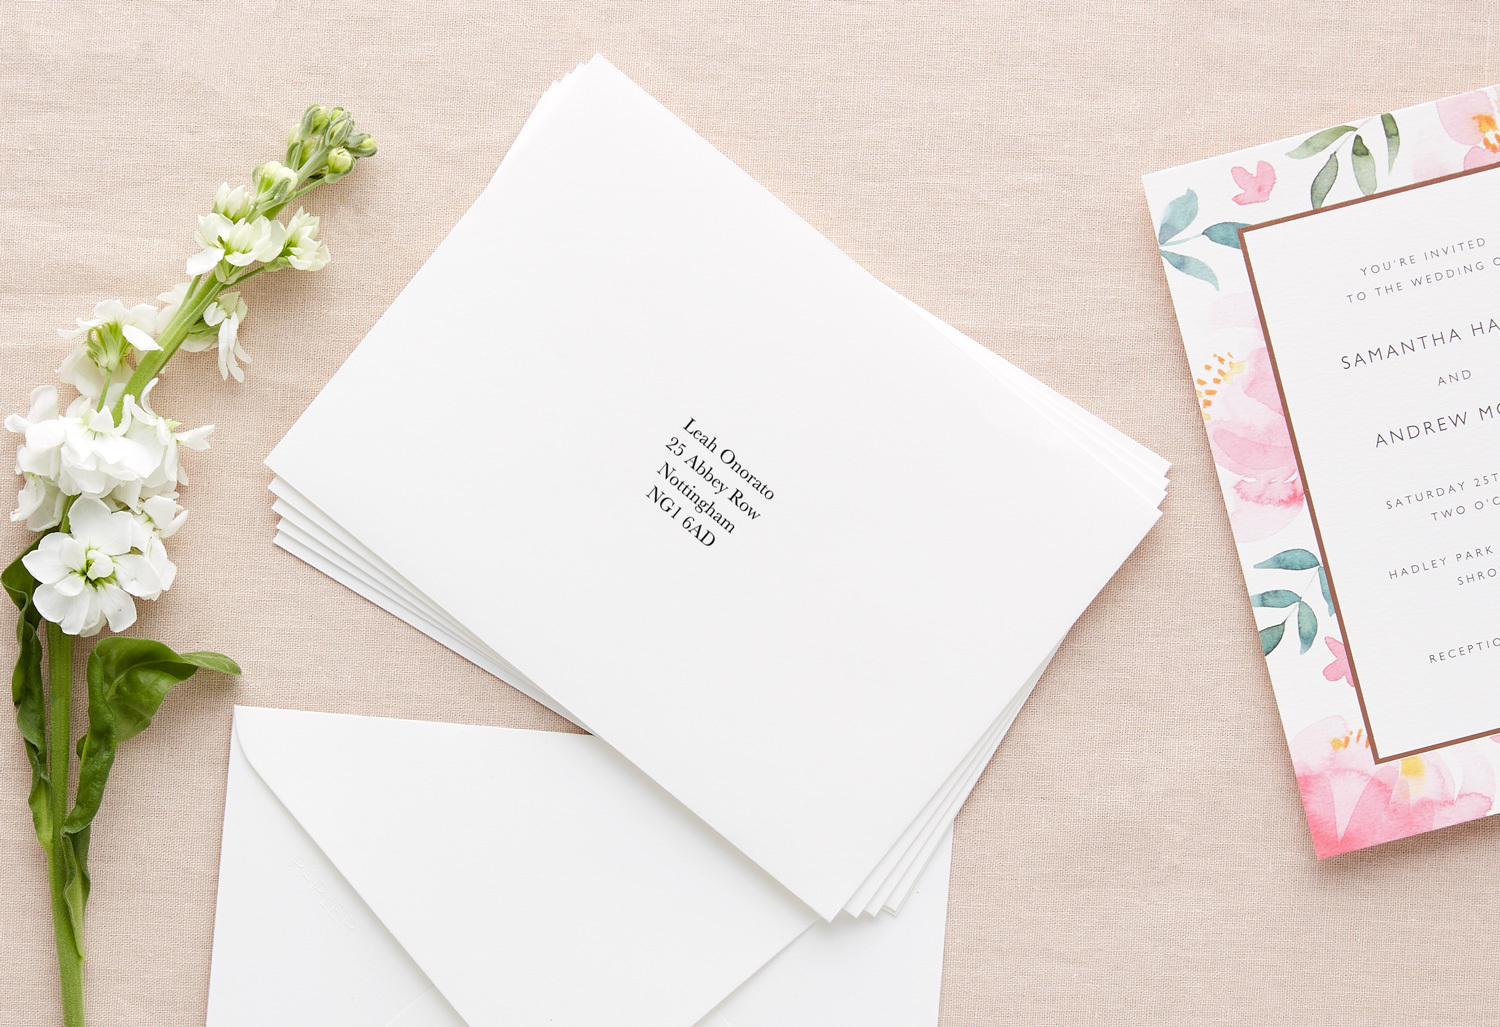 Addressing wedding envelopes to a single person plus one